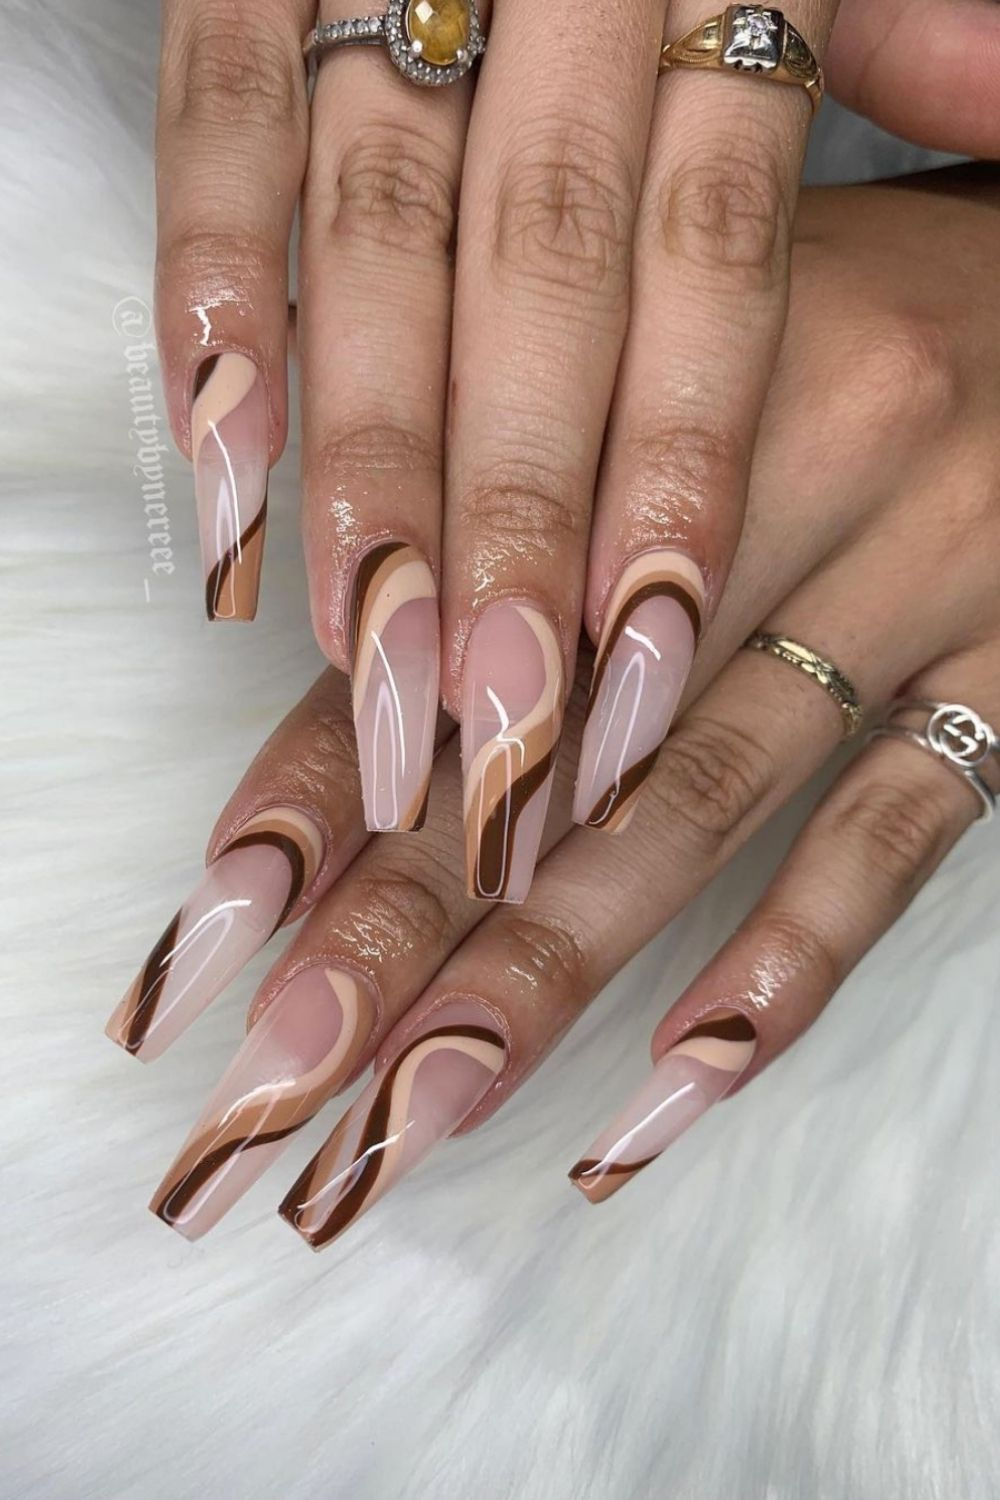 27 Trendy brown nail design ideas for fall nail colors 2021